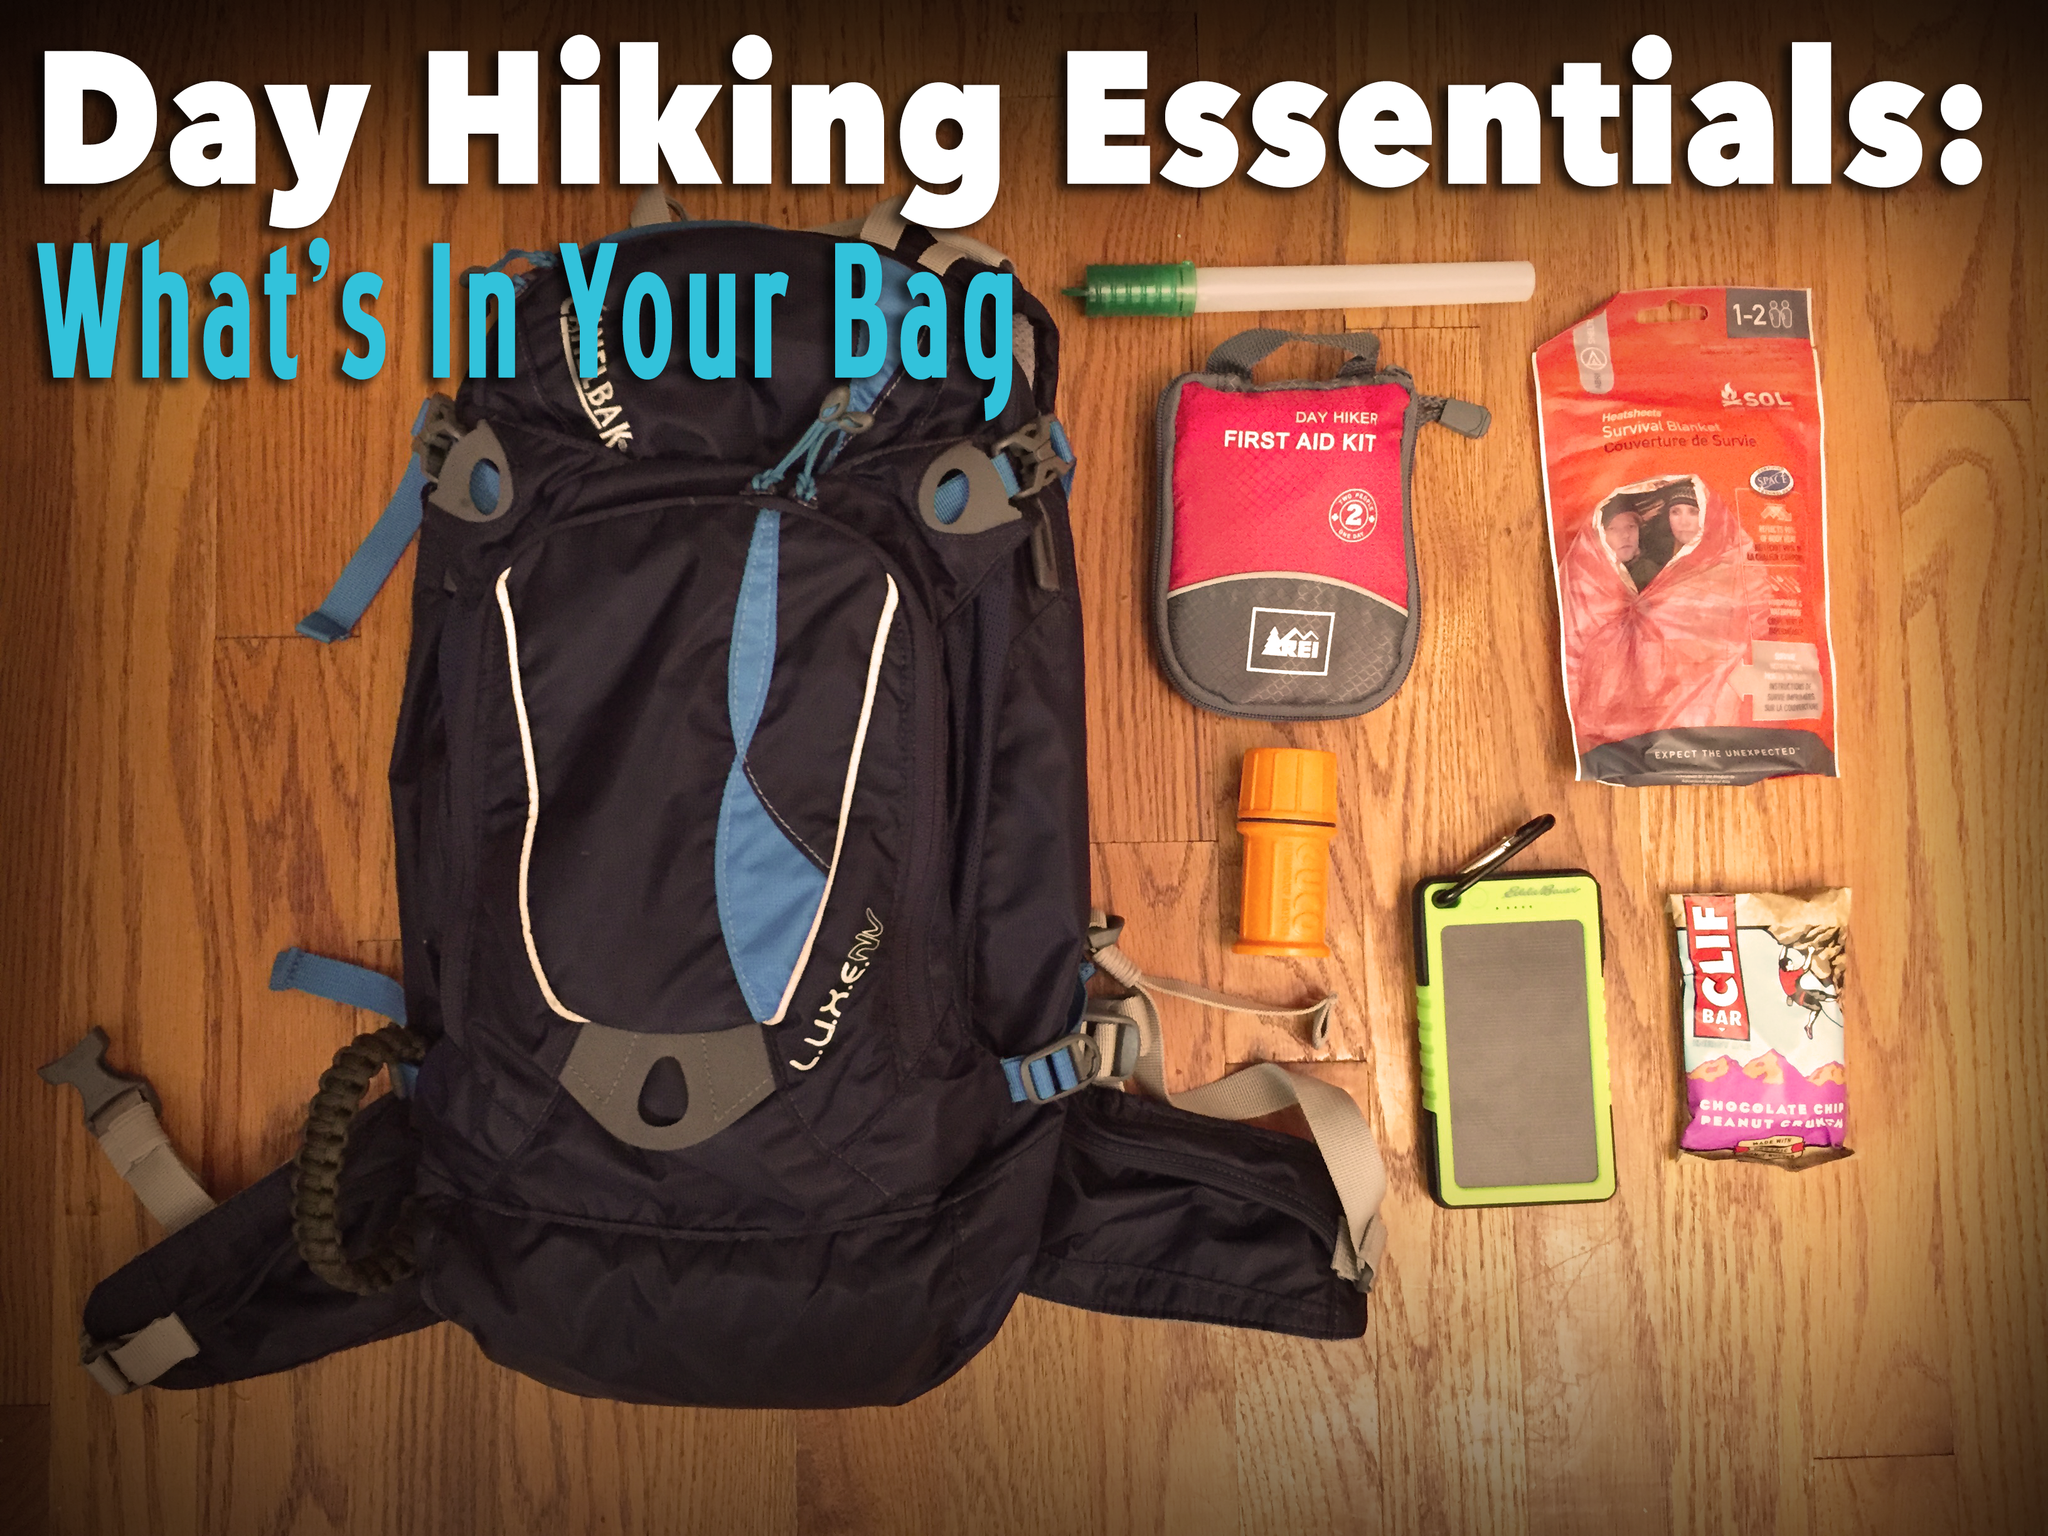 5 Women's Day Hiking Essentials - Part 2: What In Your Bag